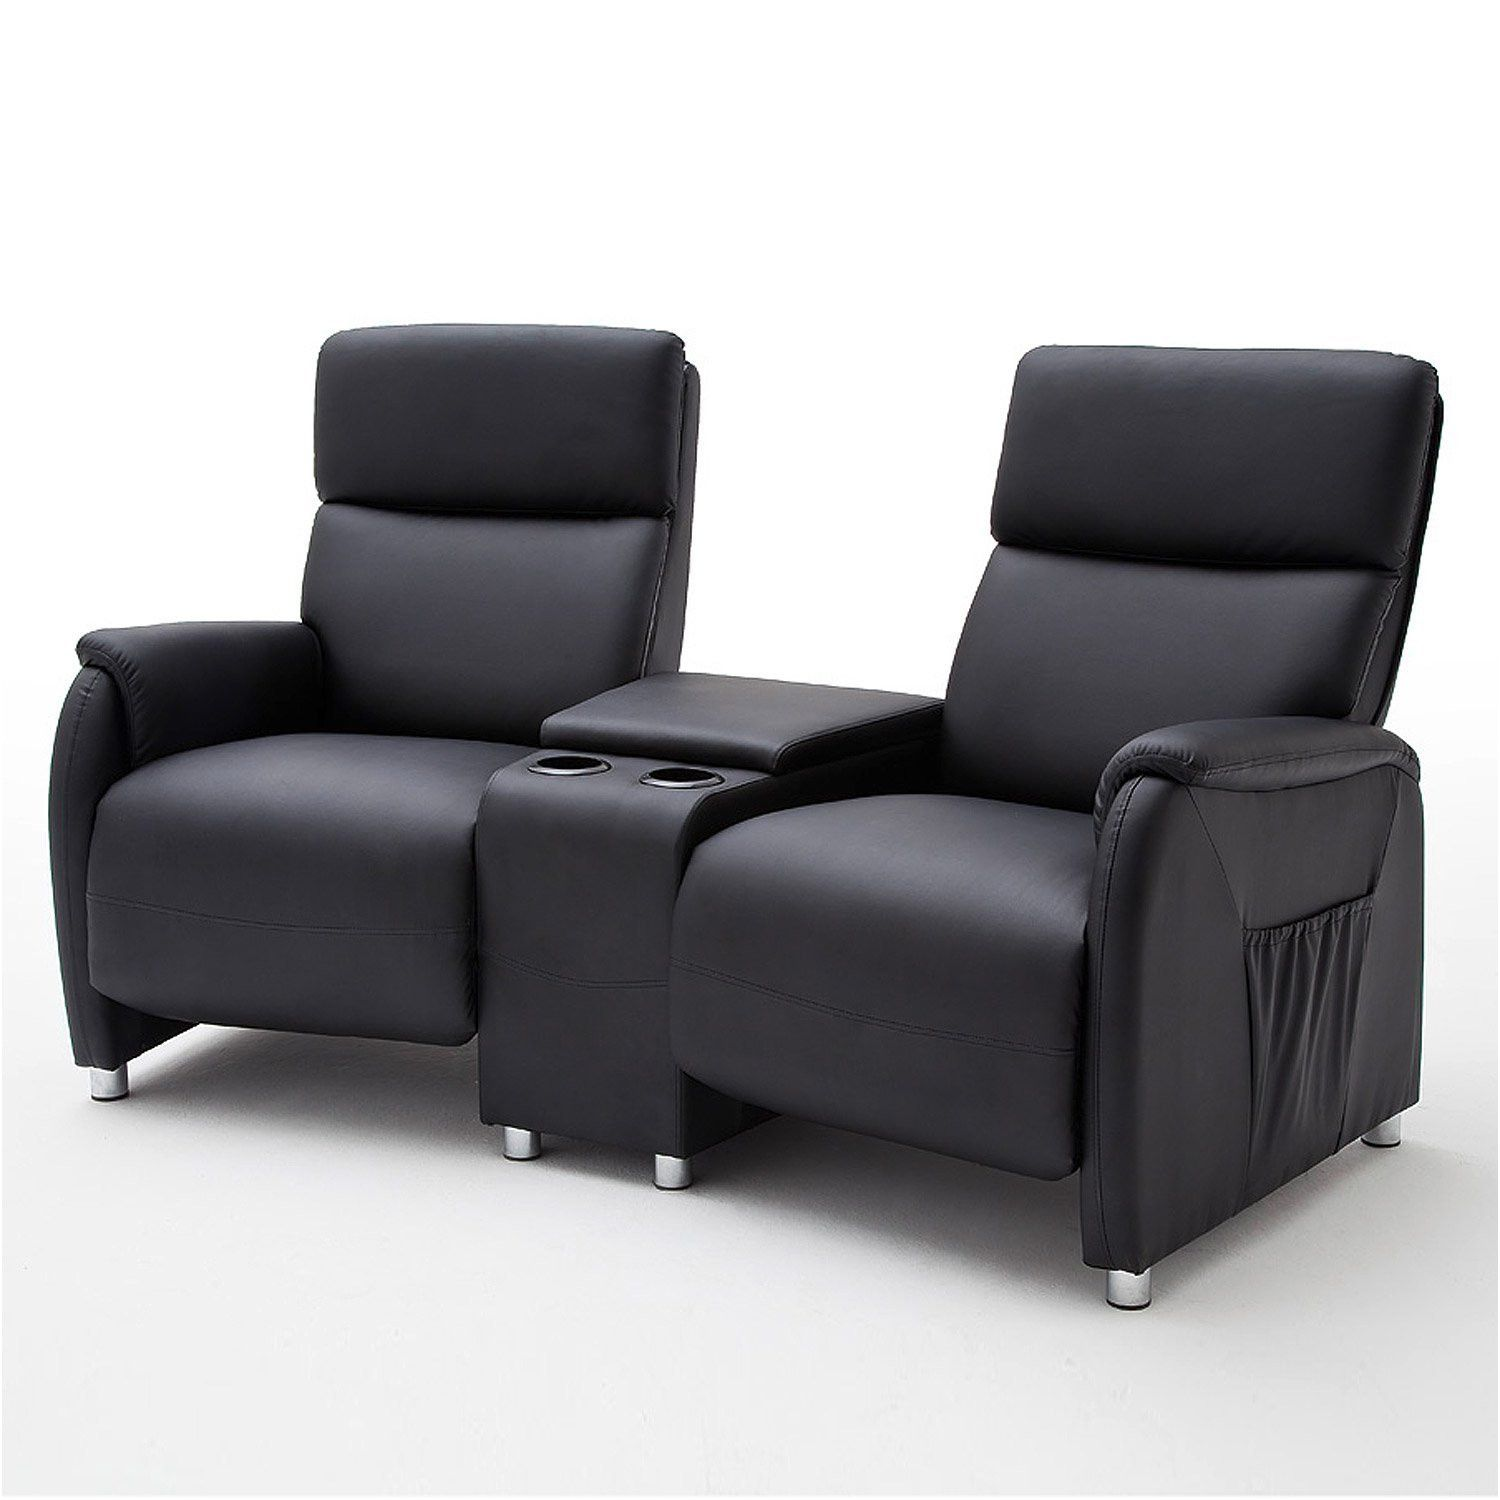 Attraktiv Couch Sessel